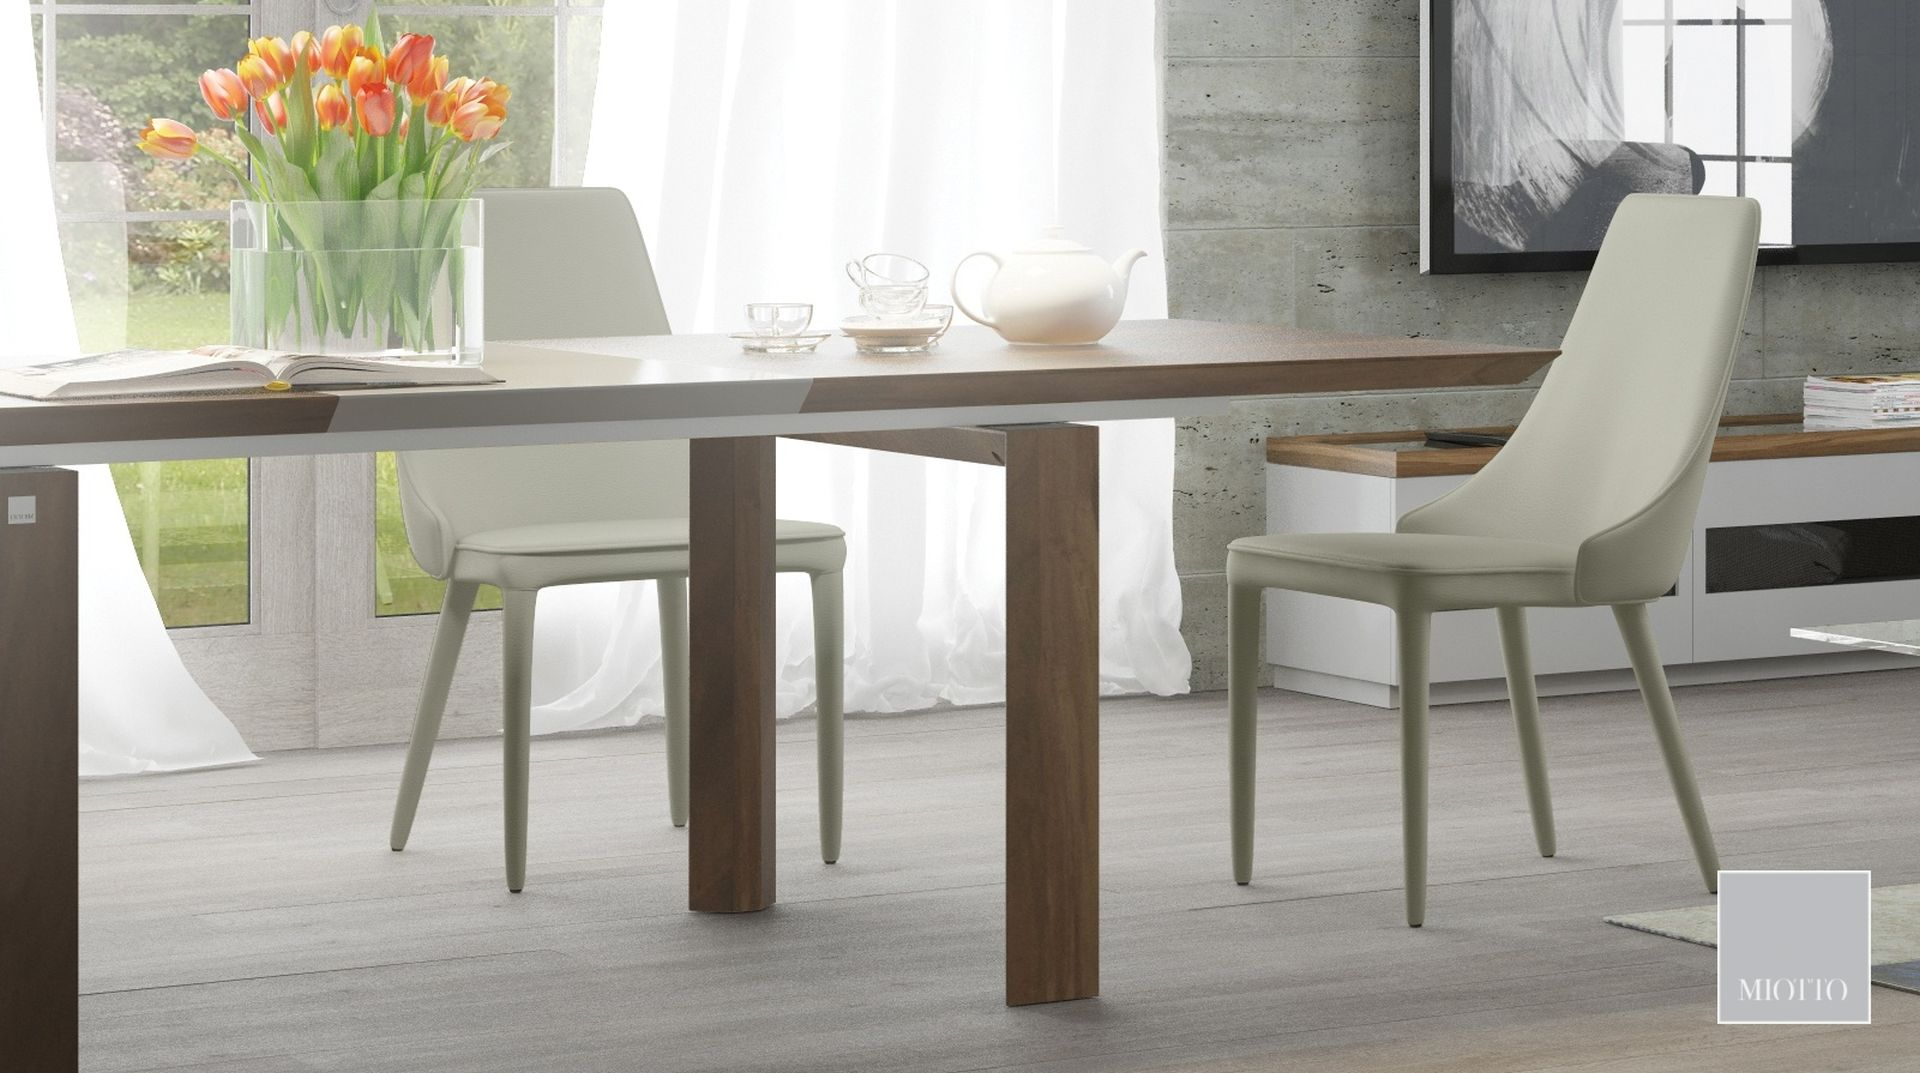 miotto_maino milvia_0001 MIOTTO design dining table chairs_w